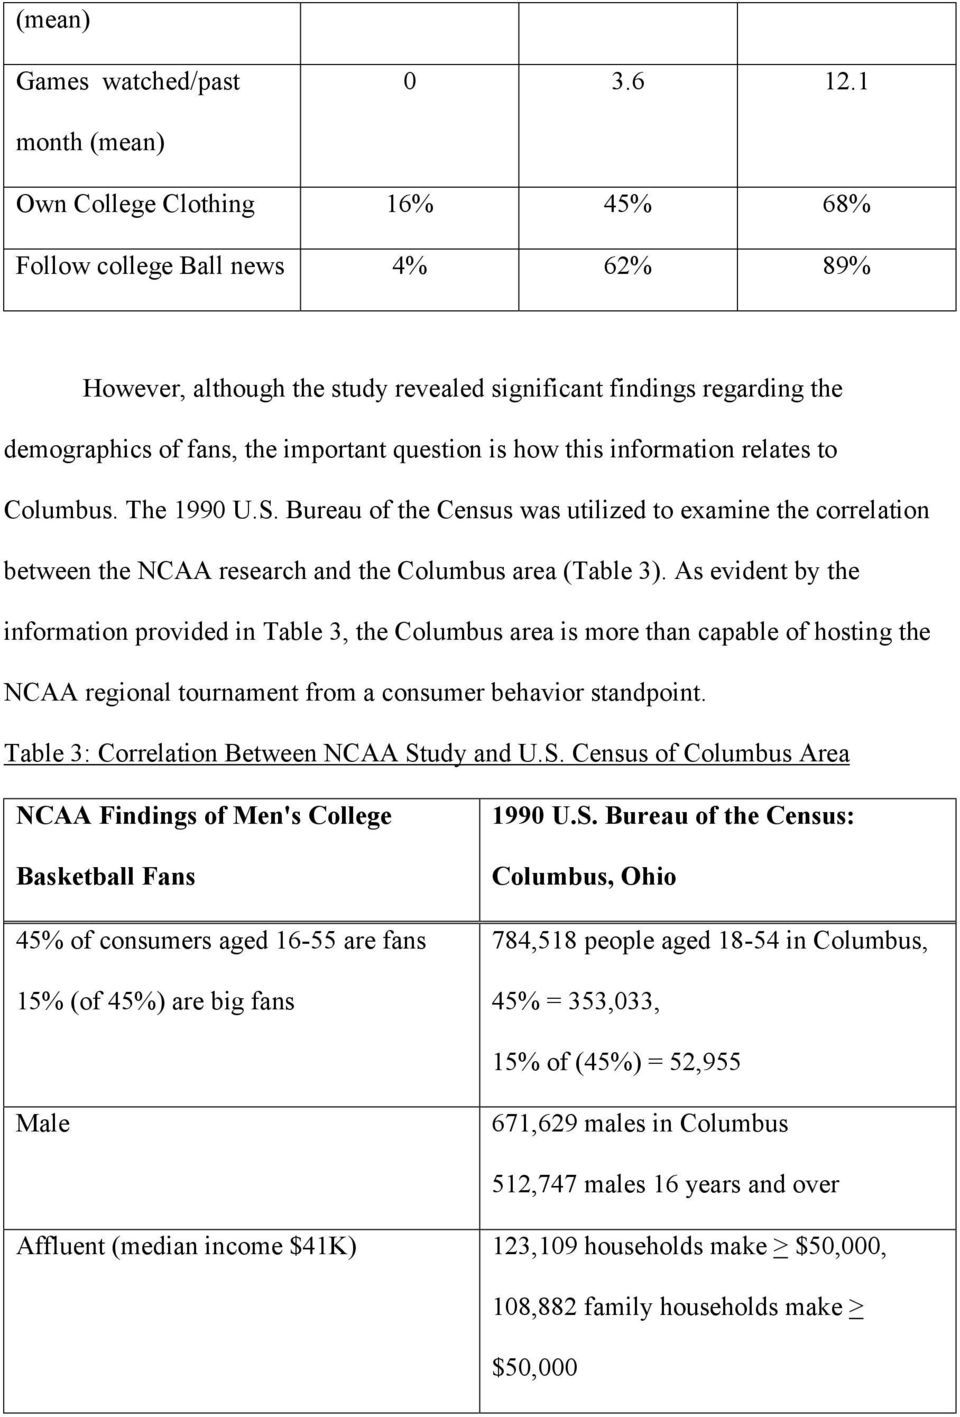 question is how this information relates to Columbus. The 1990 U.S. Bureau of the Census was utilized to examine the correlation between the NCAA research and the Columbus area (Table 3).